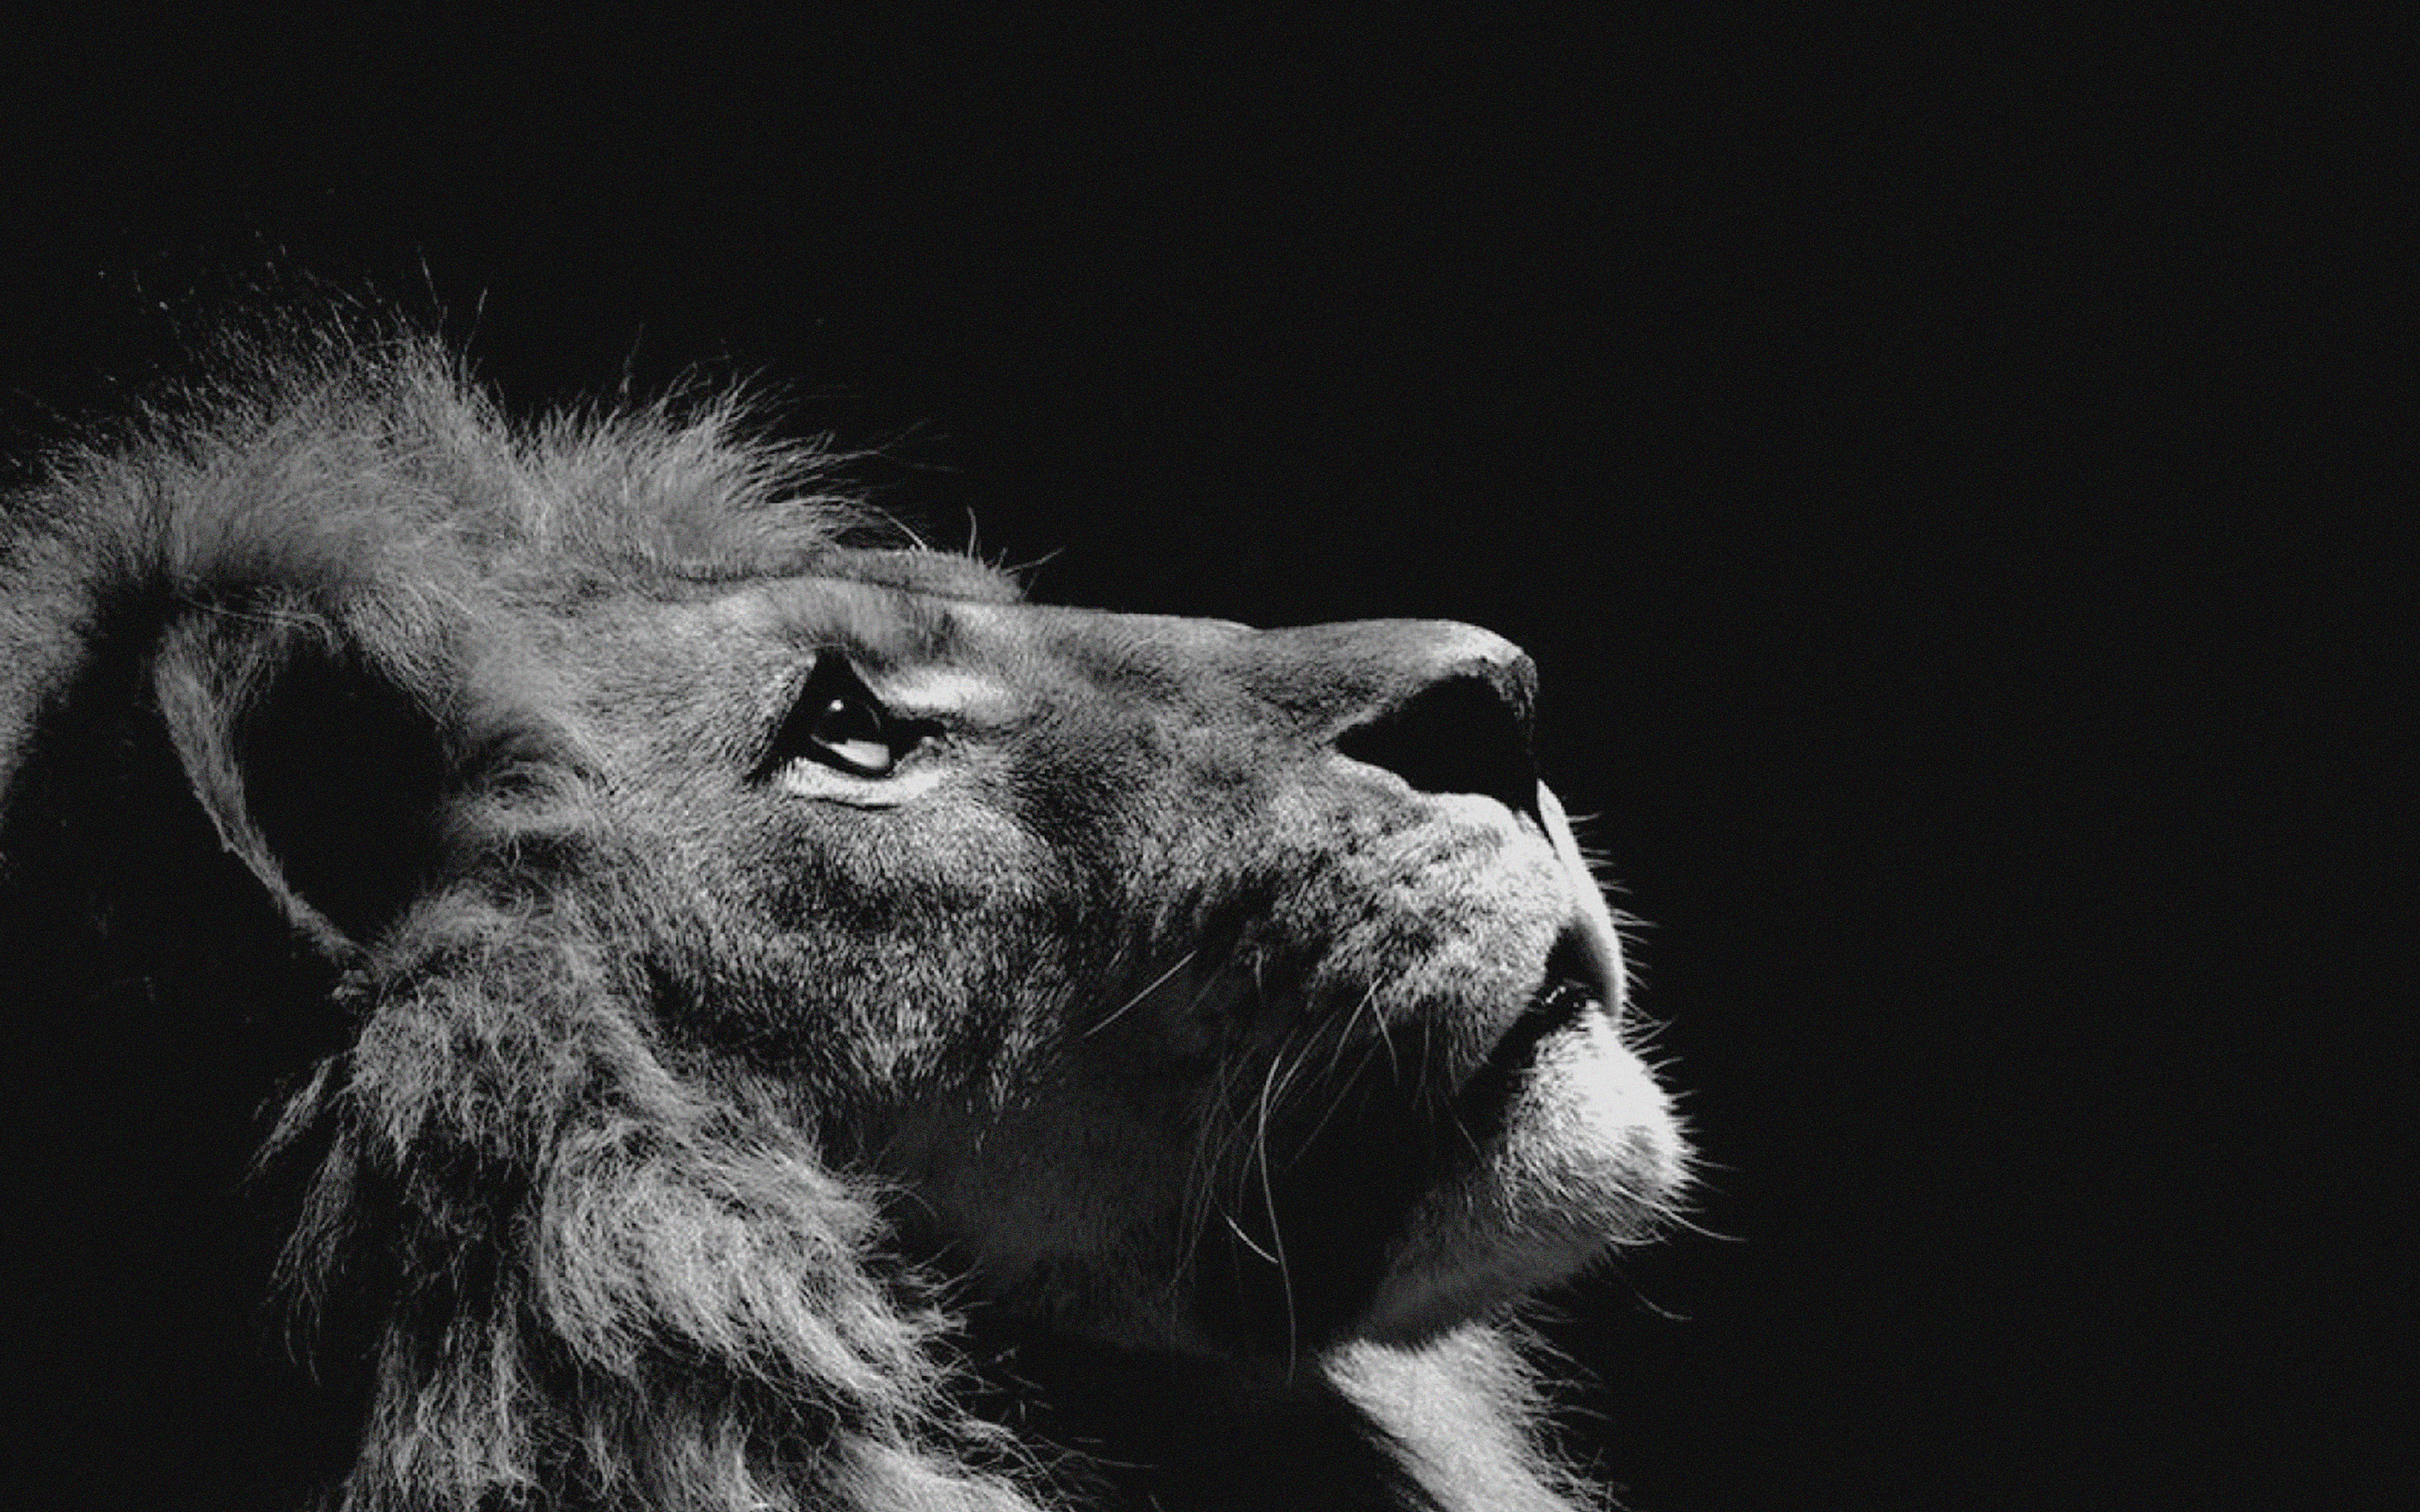 mj50-lion-looking-sky-animal-nature-dark-photo - papers.co